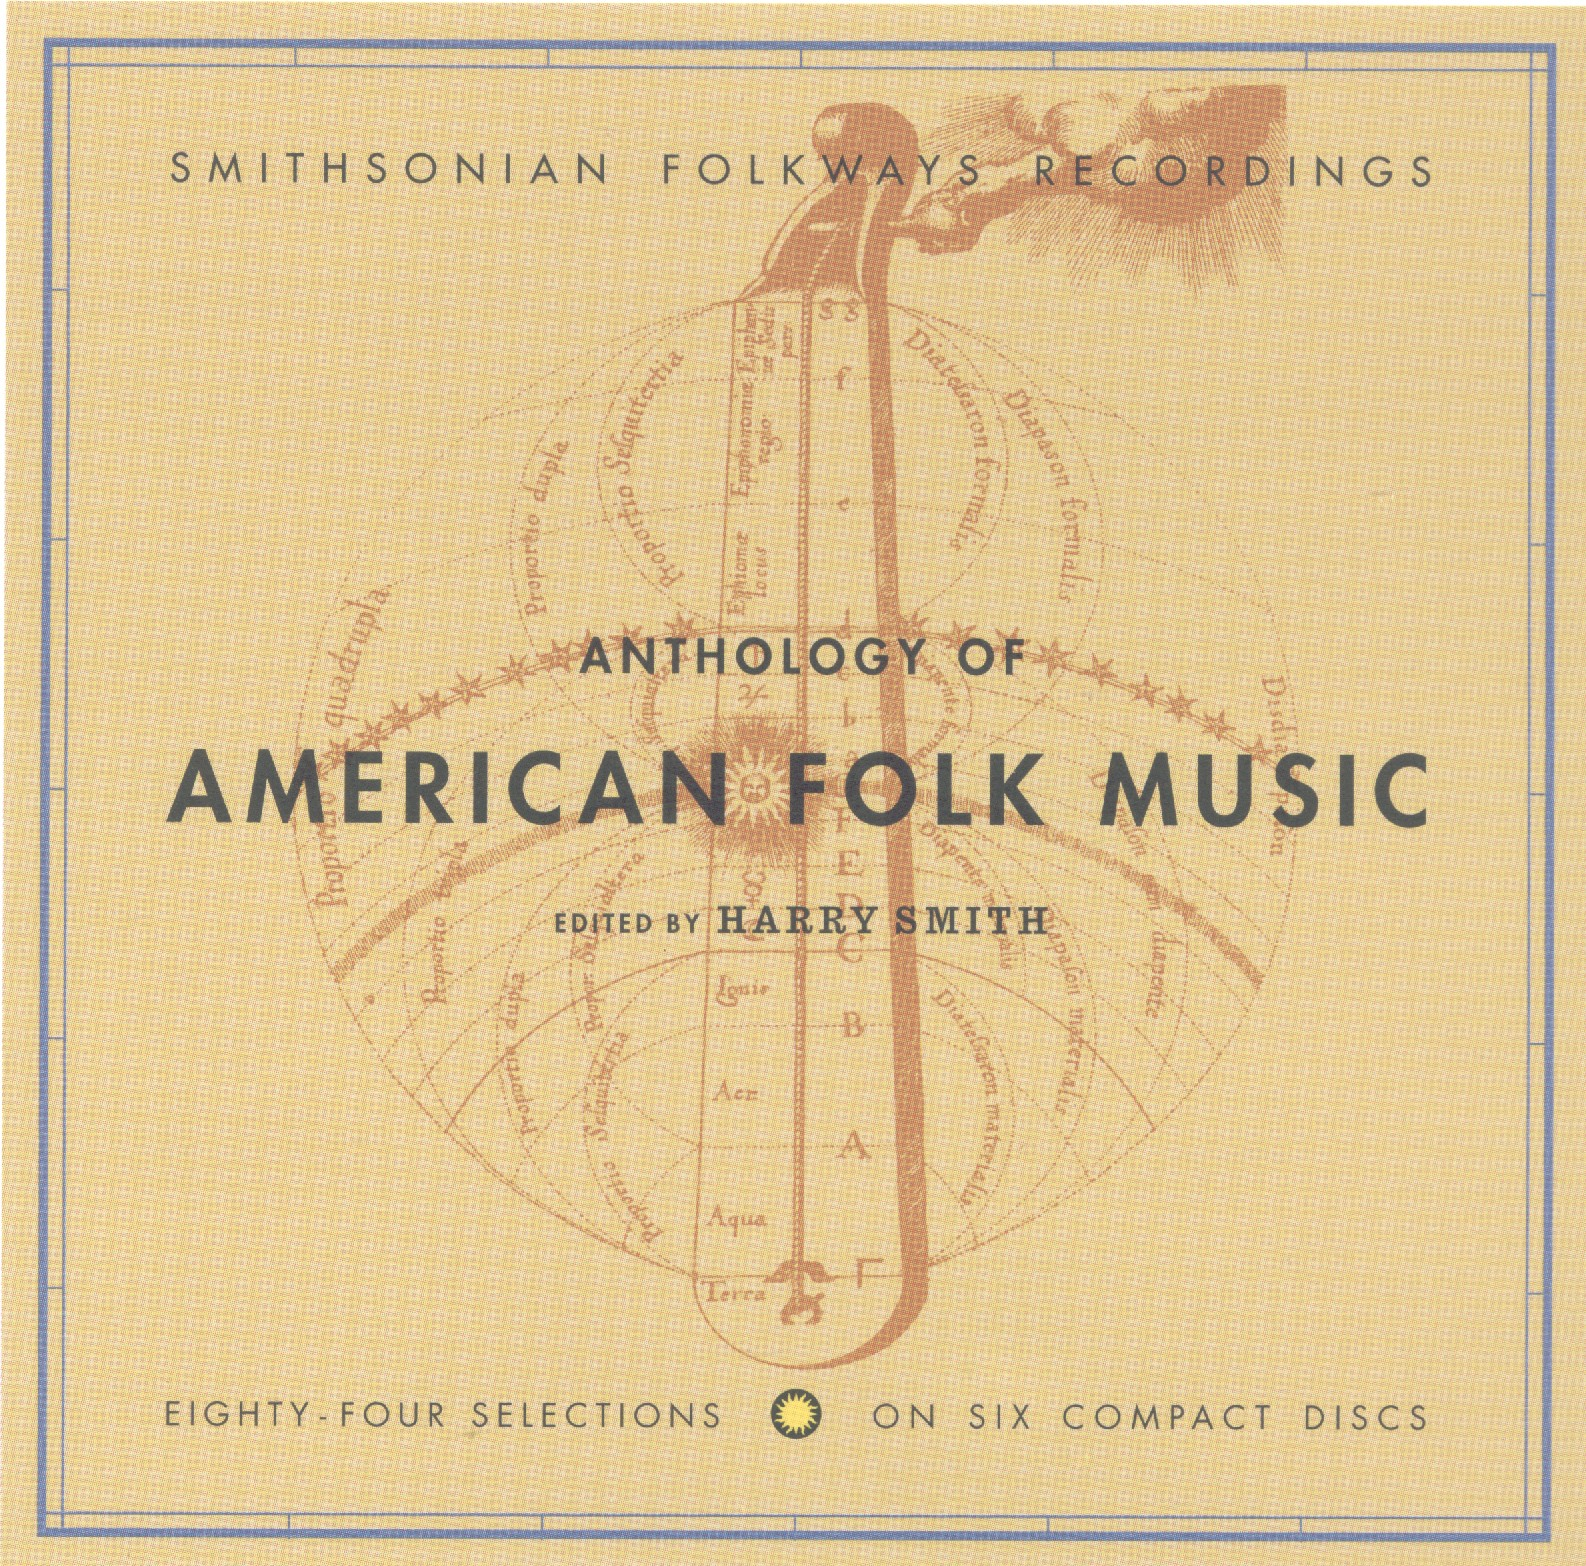 american folk music could